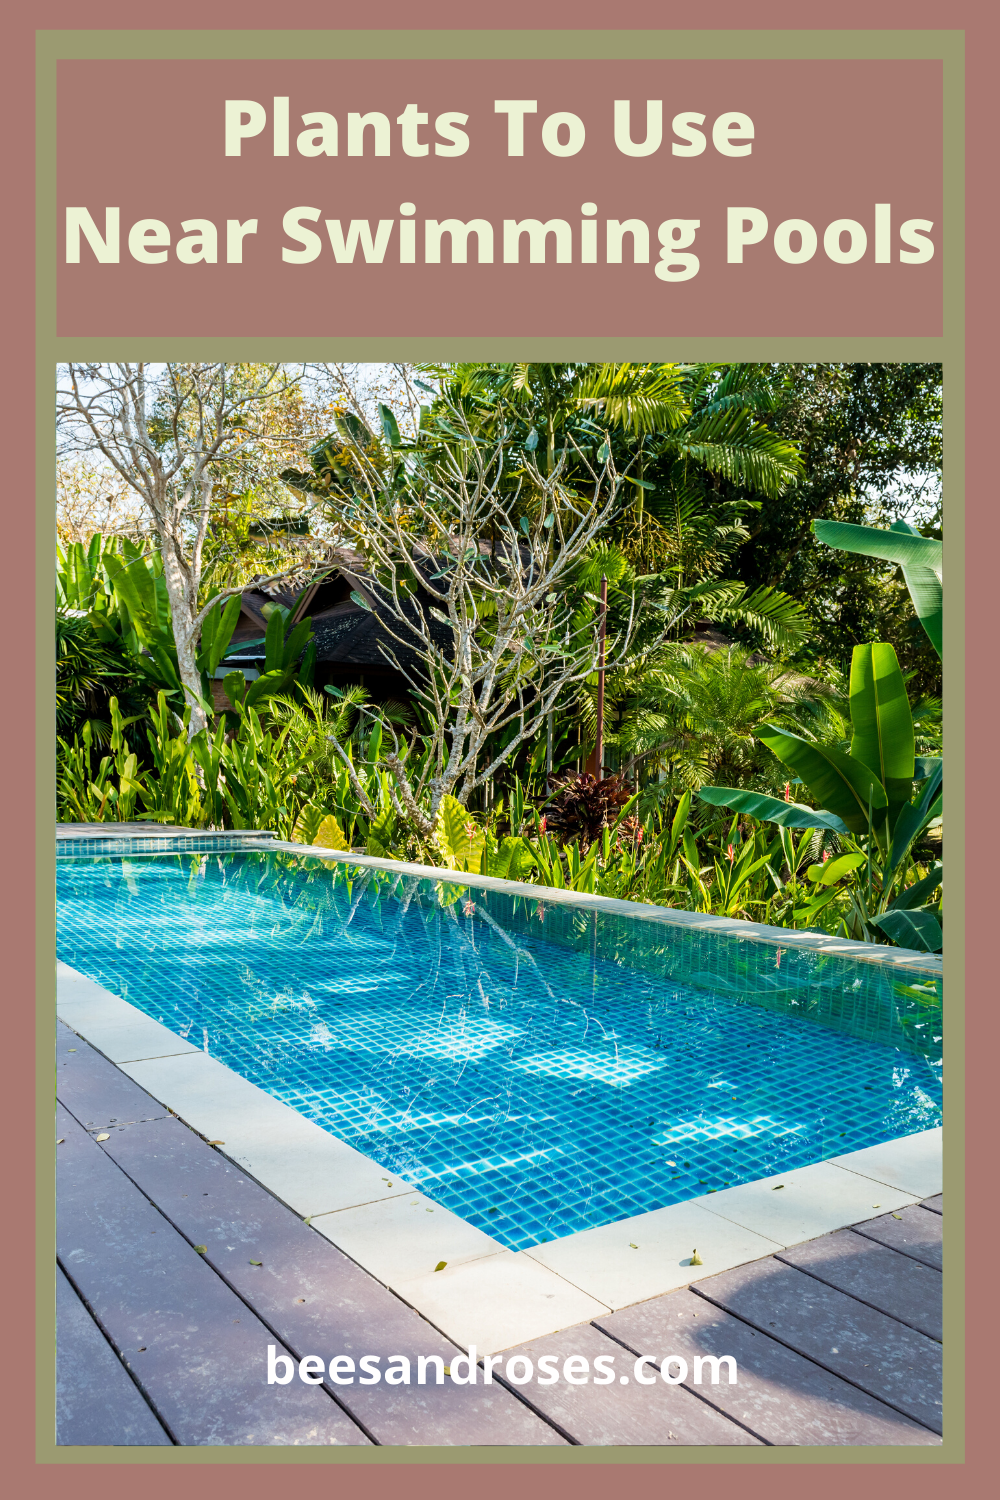 Pools are so much fun for families. But as a landscaper, I know what makes pools really stand out from the rest. It's the landscape around them. Use these plants near swimming pools to soften the hardeness of the design and blend into the landscape. Read on for a list of plants. #plantstousenearswimmingpools #poollandscapeideas #landscape #beesandrosesblog